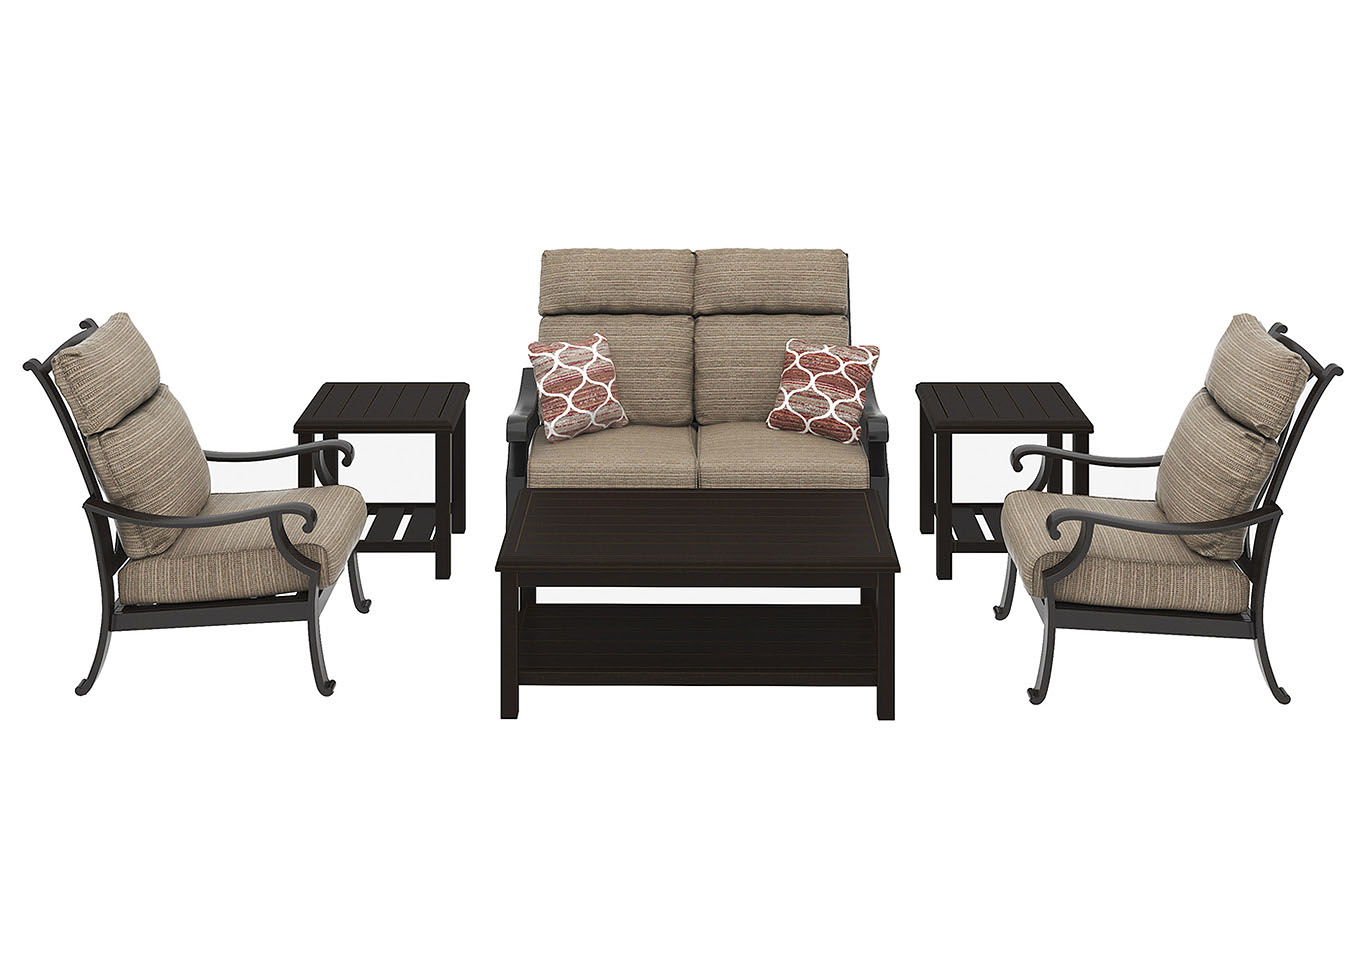 Chestnut Ridge Rectangular Cocktail Table w/2 End Table, Loveseat & 2 Lounge Chair Cushion,Outdoor By Ashley